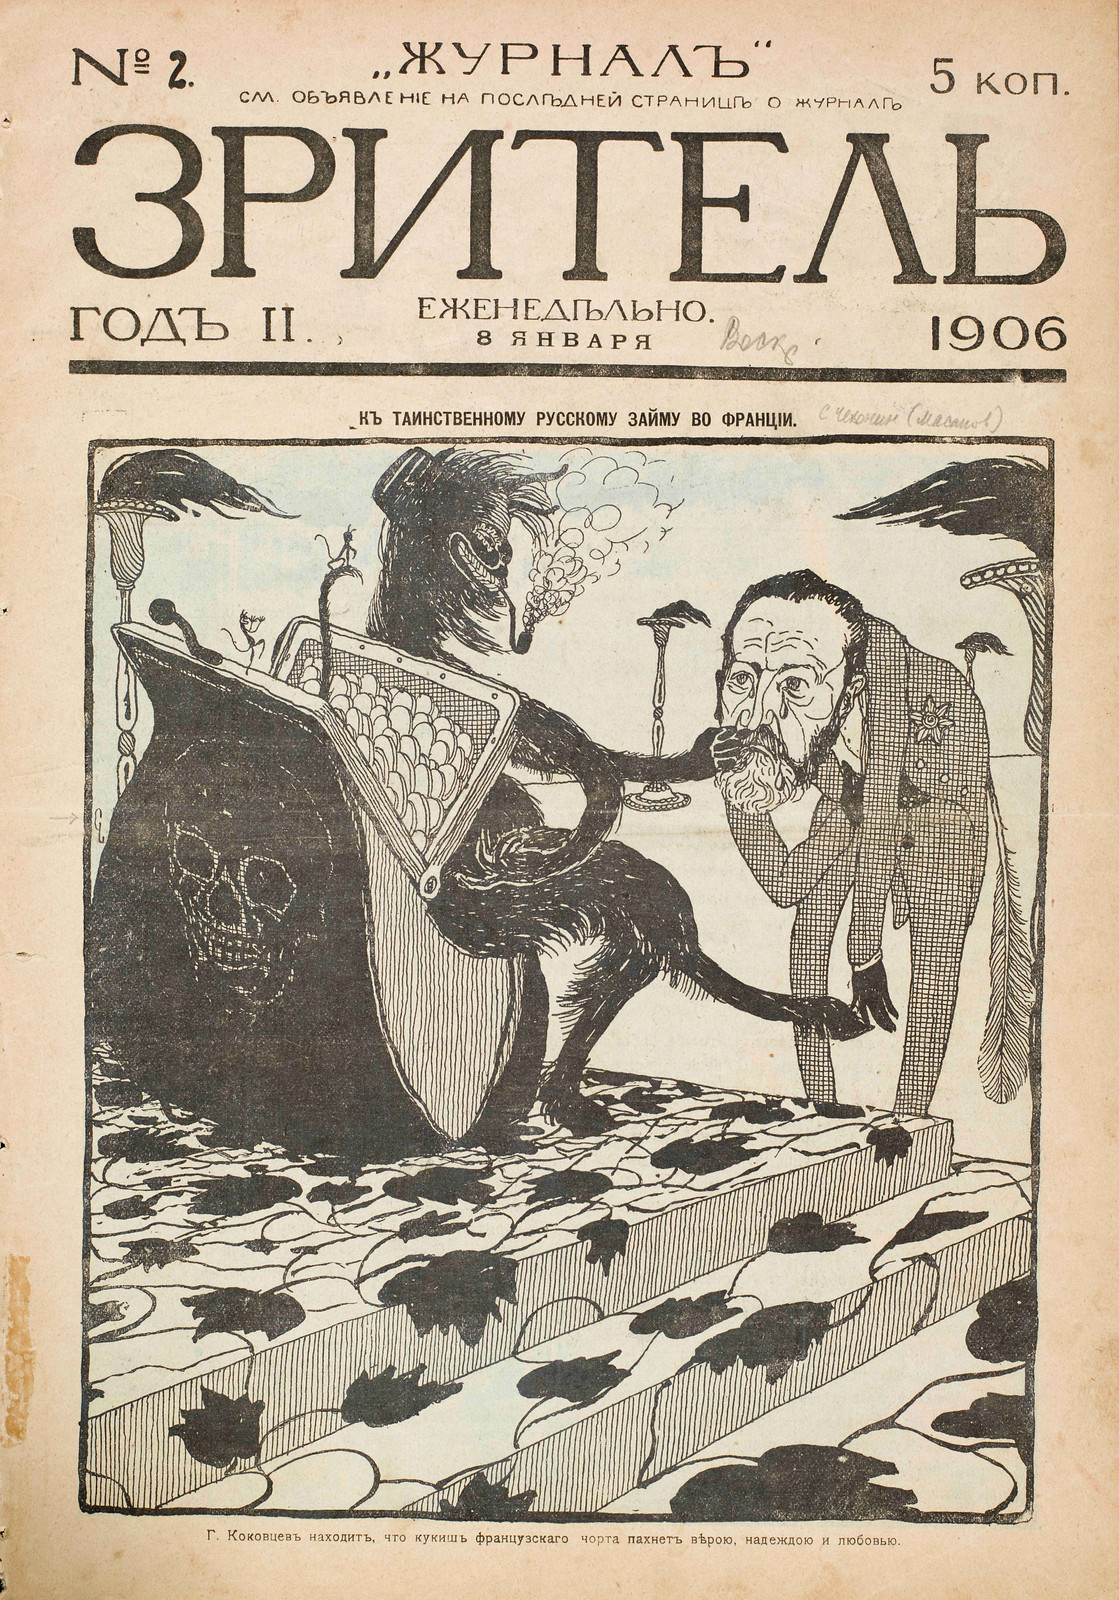 Zritel', vol. 2, no. 2, January 8, 1906-1